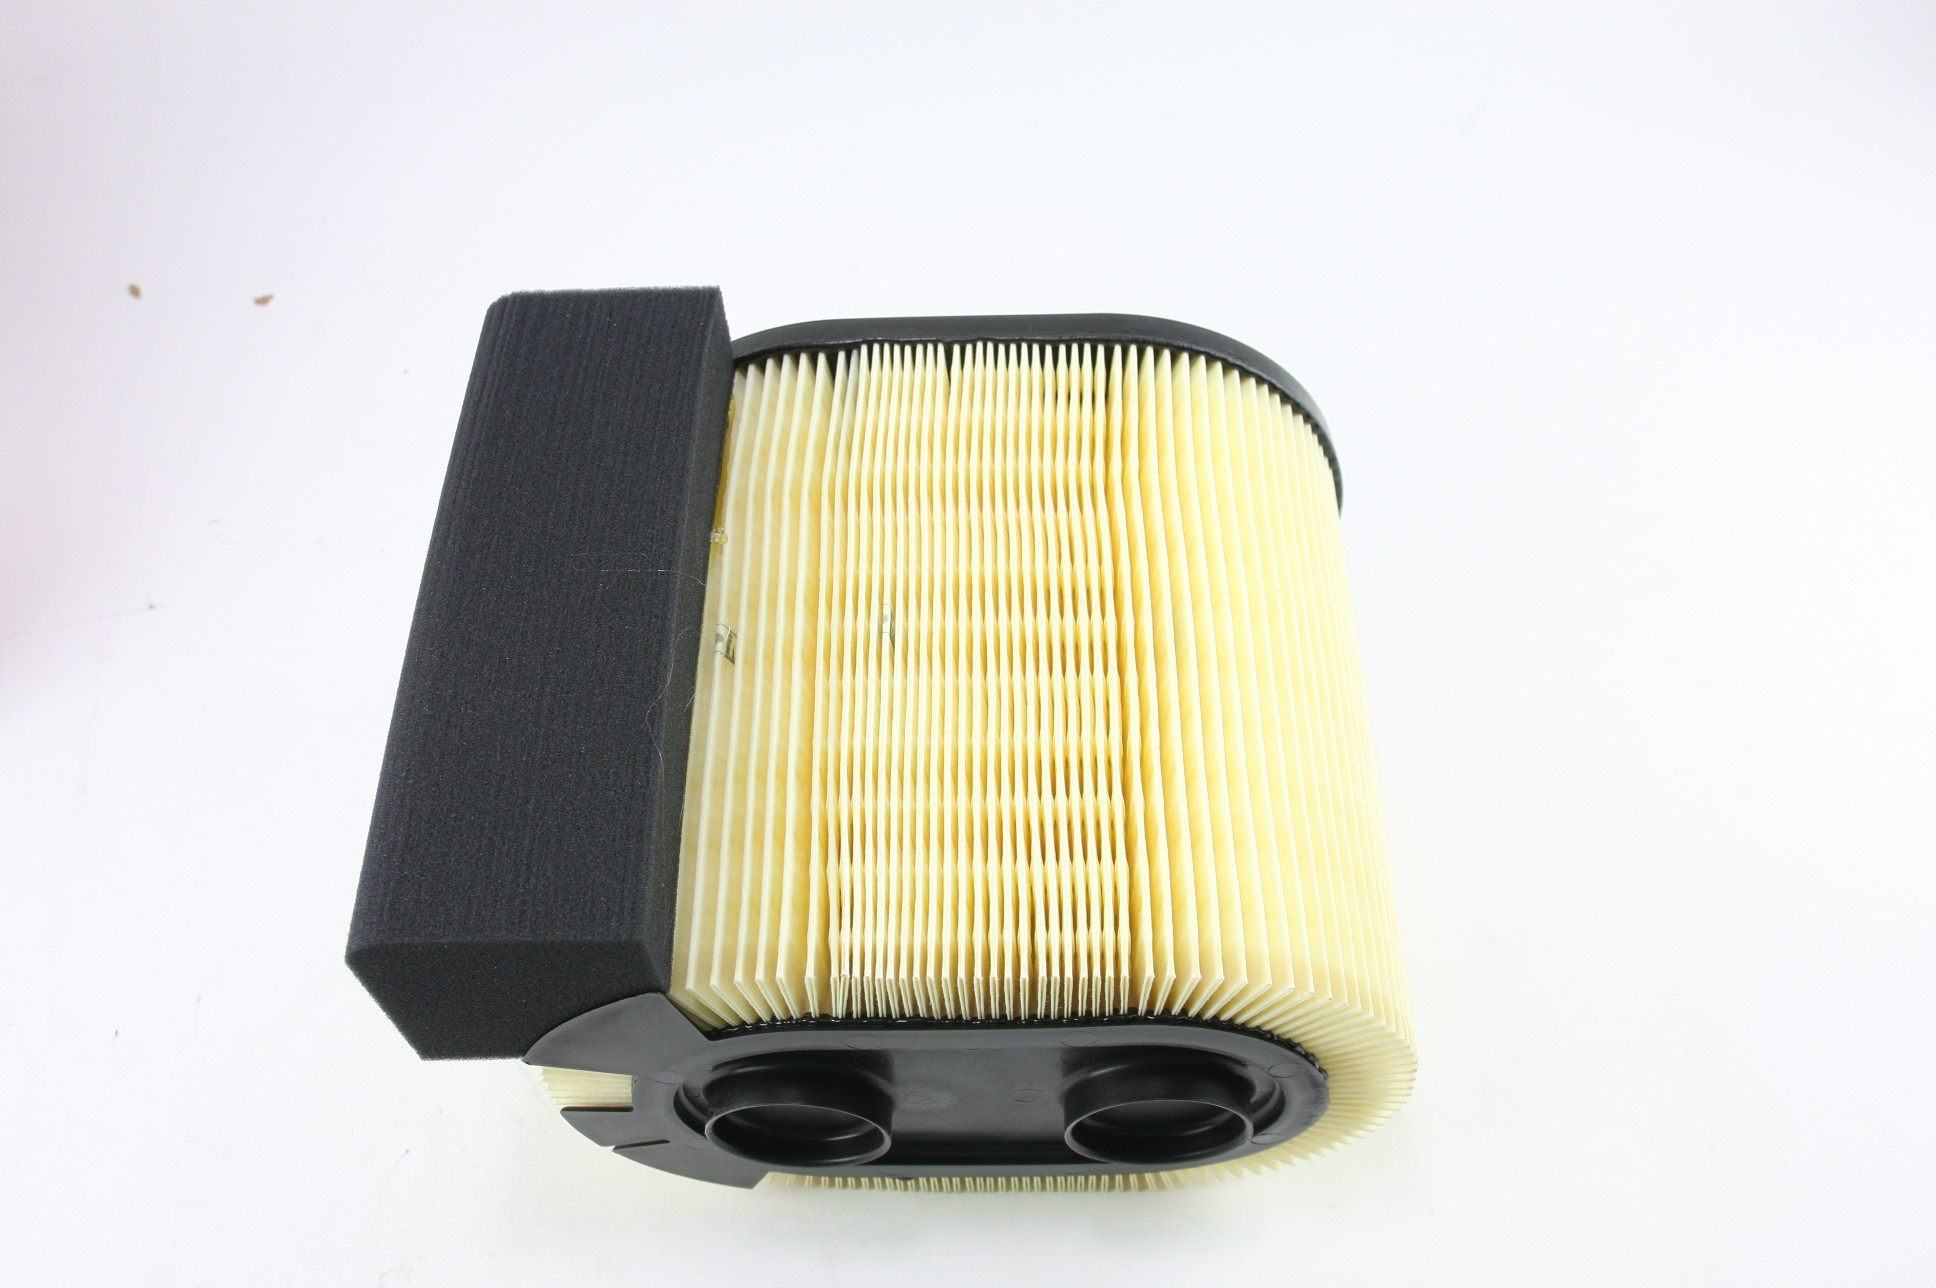 * New OEM 2 Pack Motorcraft FA1927 Ford HC3Z9601A Powerstroke Diesel Air Filter - image 5